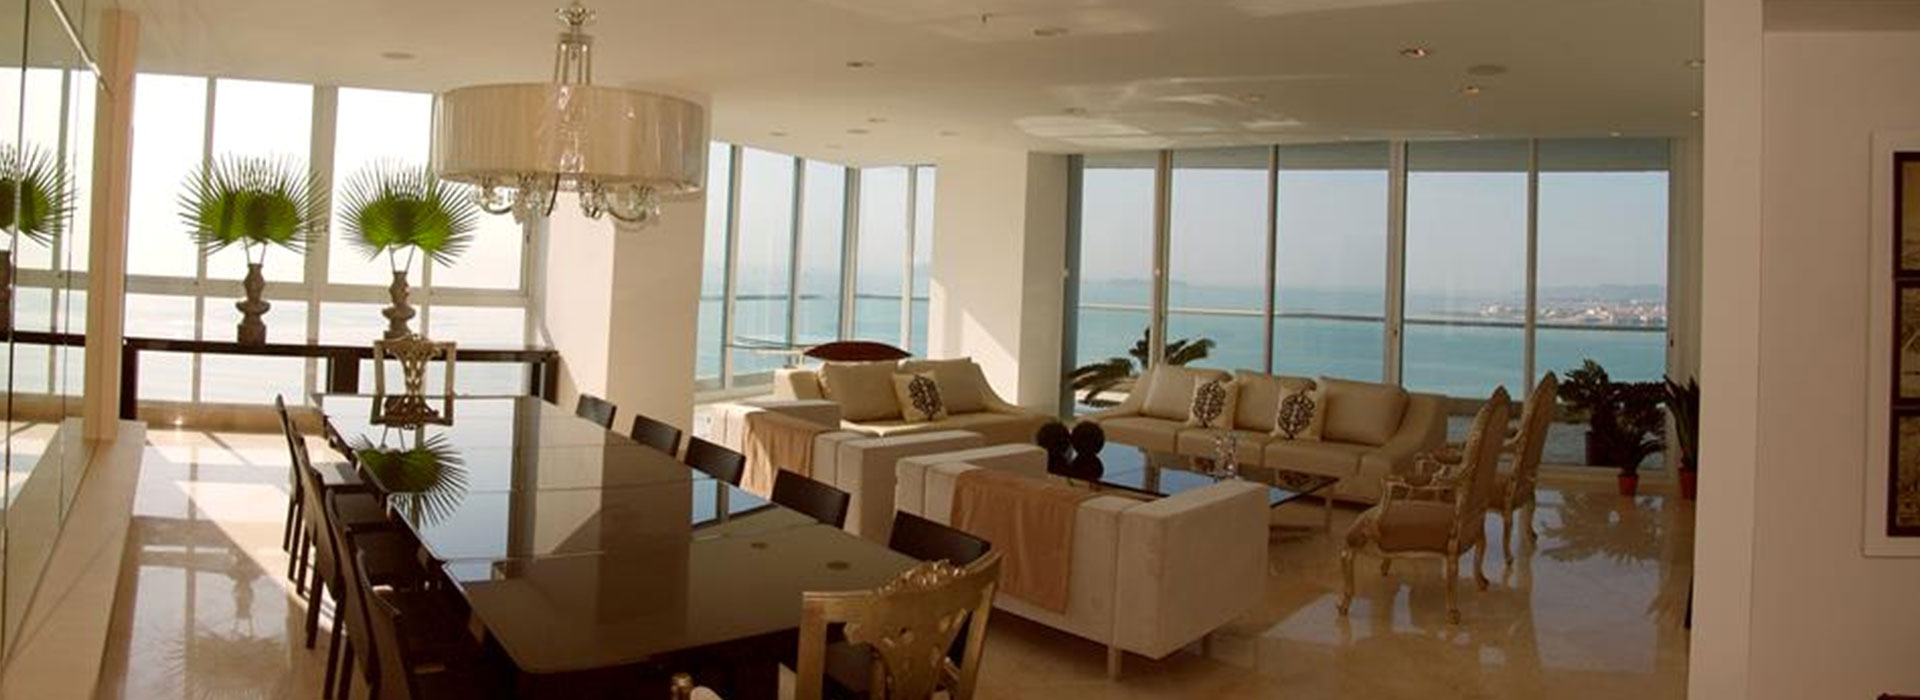 Luxury, Security And The Best View Of Panama, Punta Paitilla - PAN (photo 1)